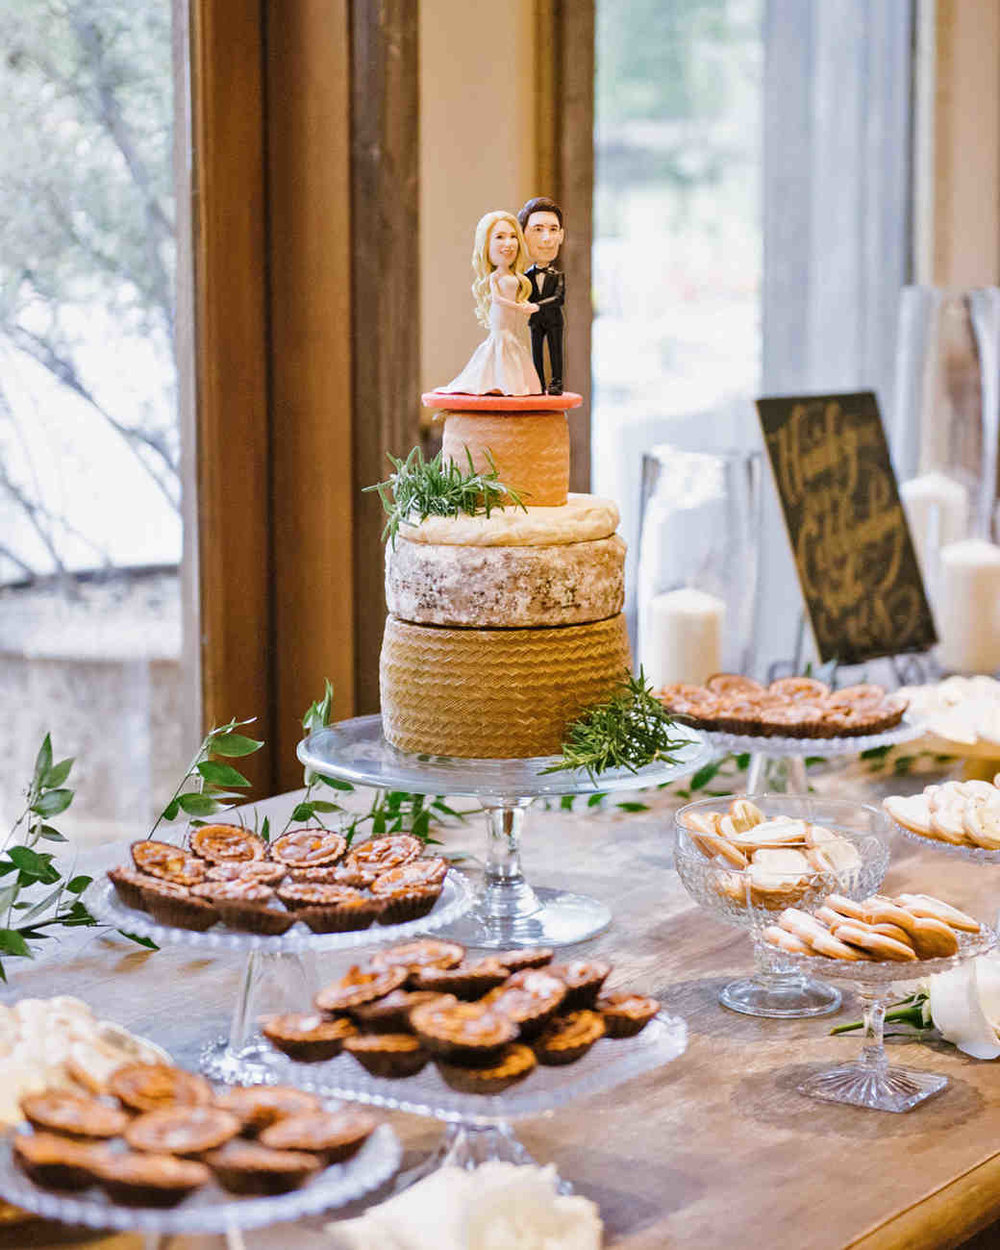 shannon-jon-wedding-cheese-desserts-0675-6238579-0117_vert.jpg